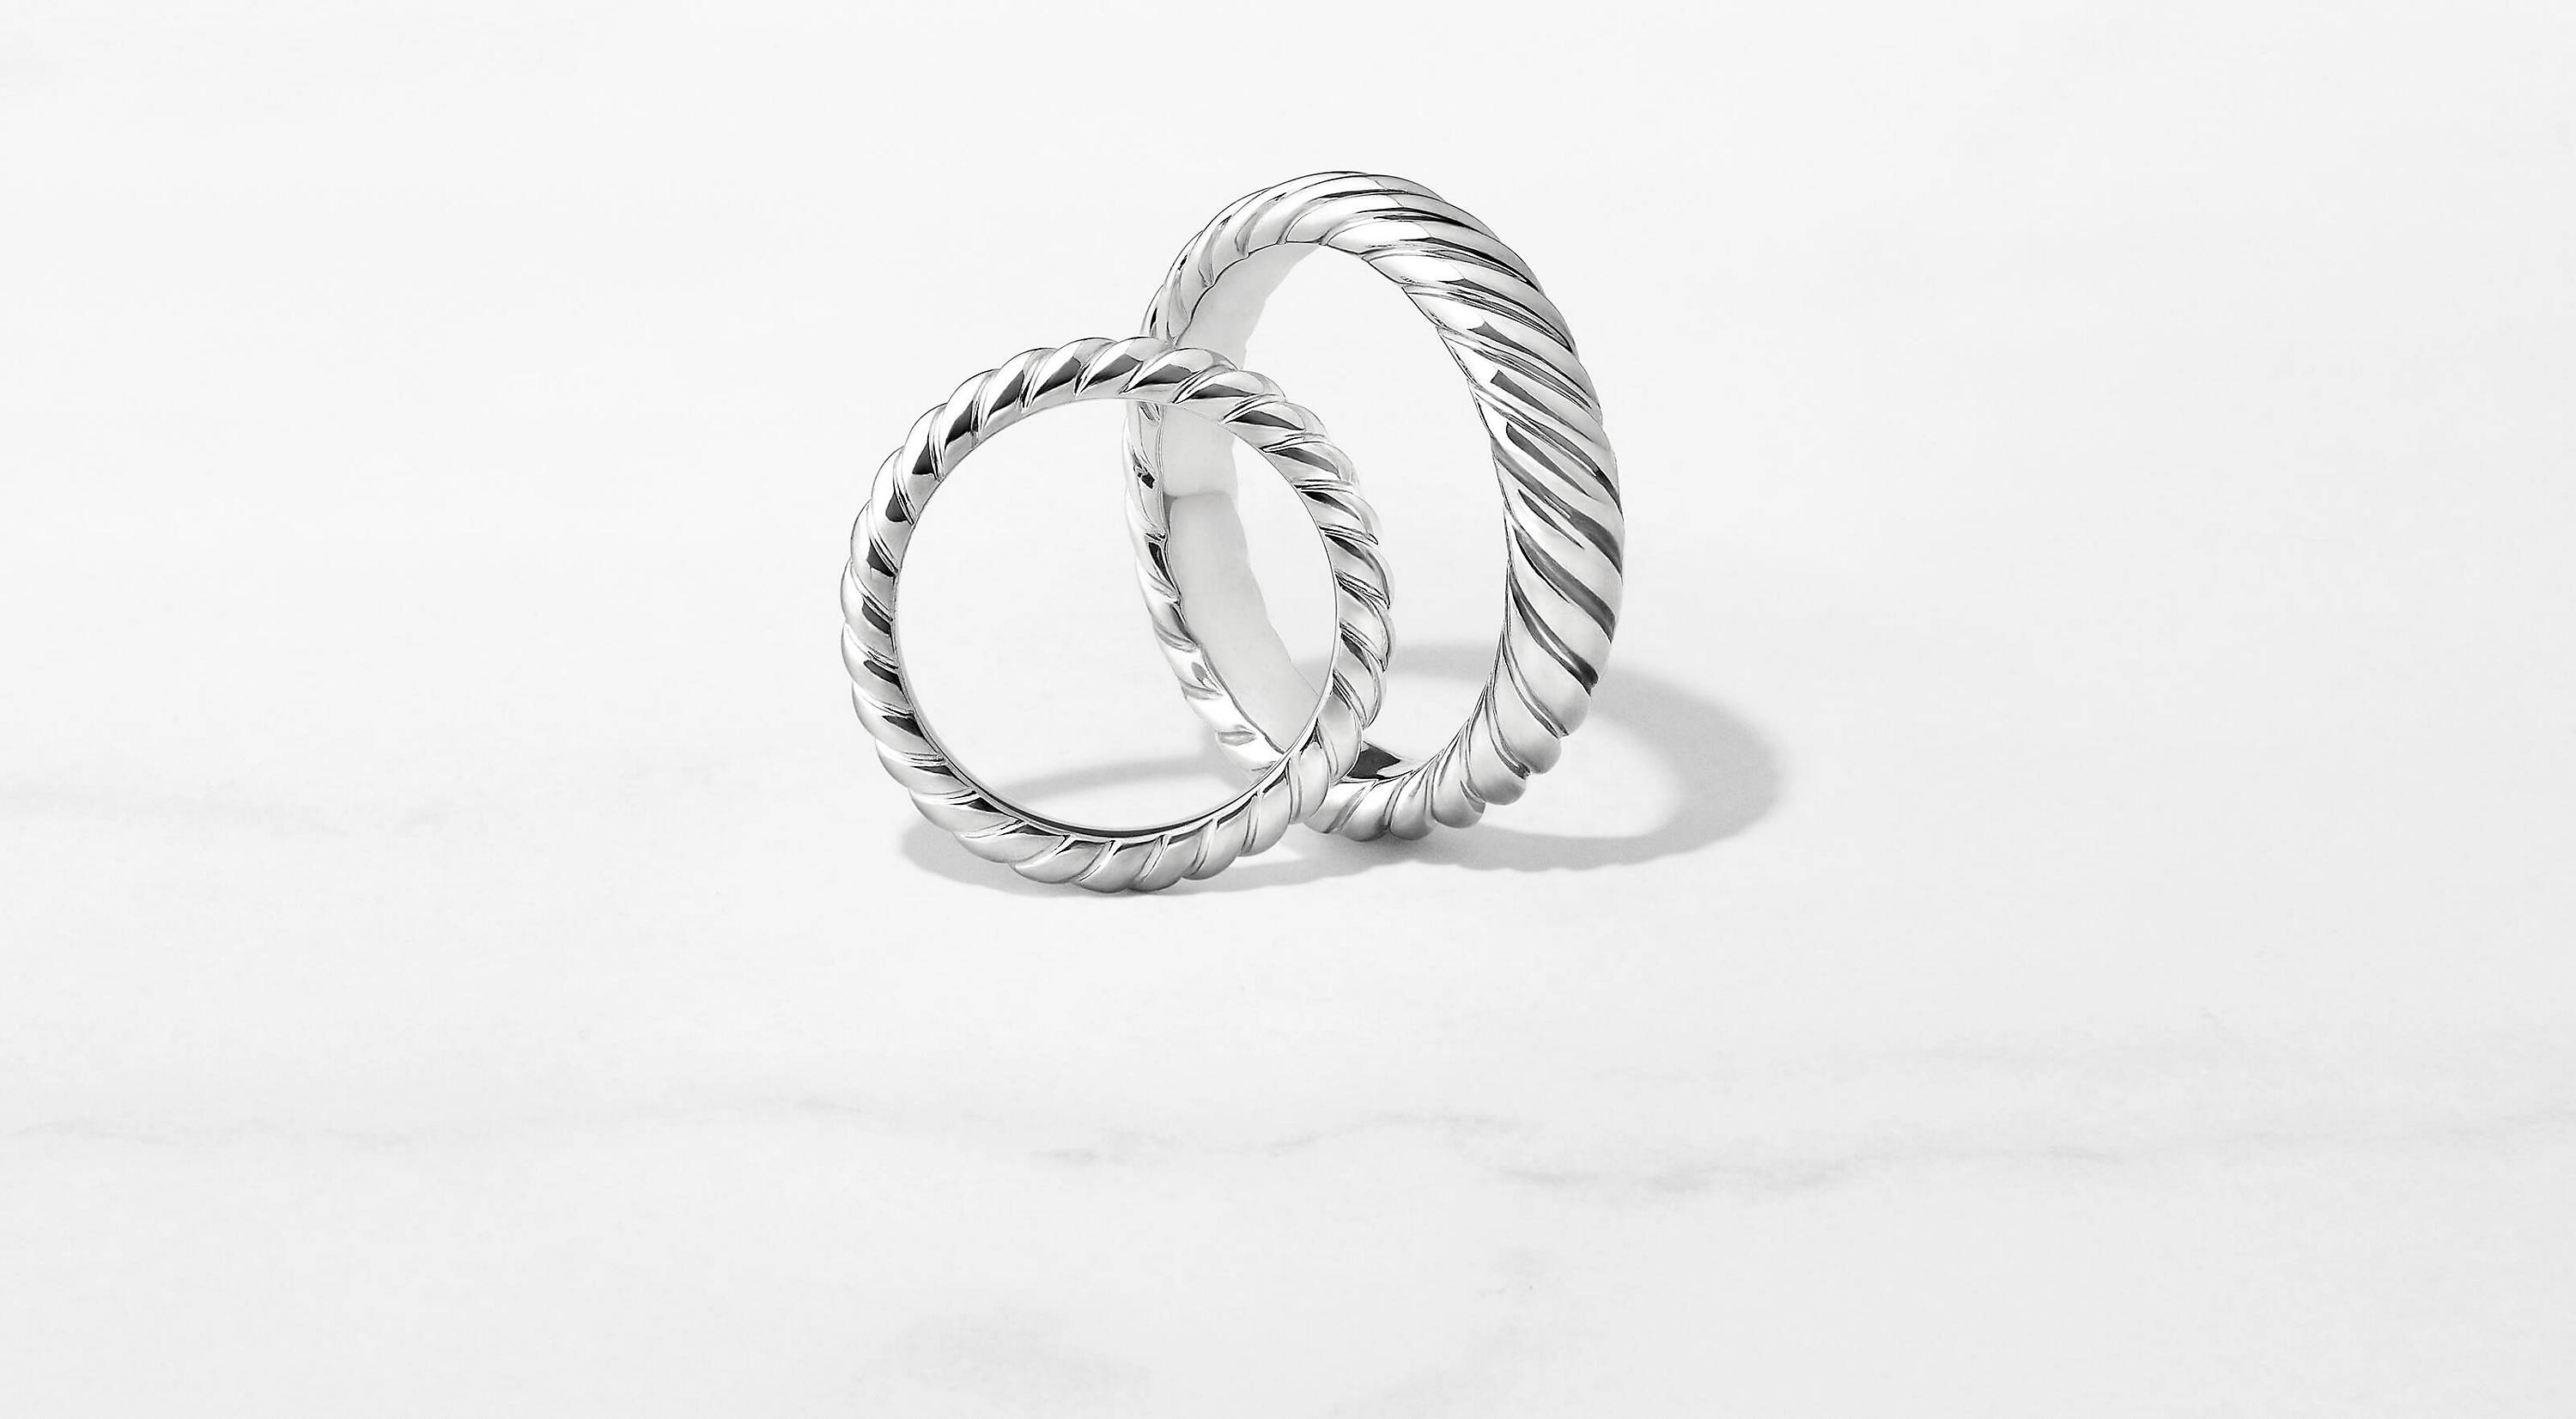 A DY Unity women's band in platinum leans against an upright Cable men's band in 18K white gold on a marble surface.